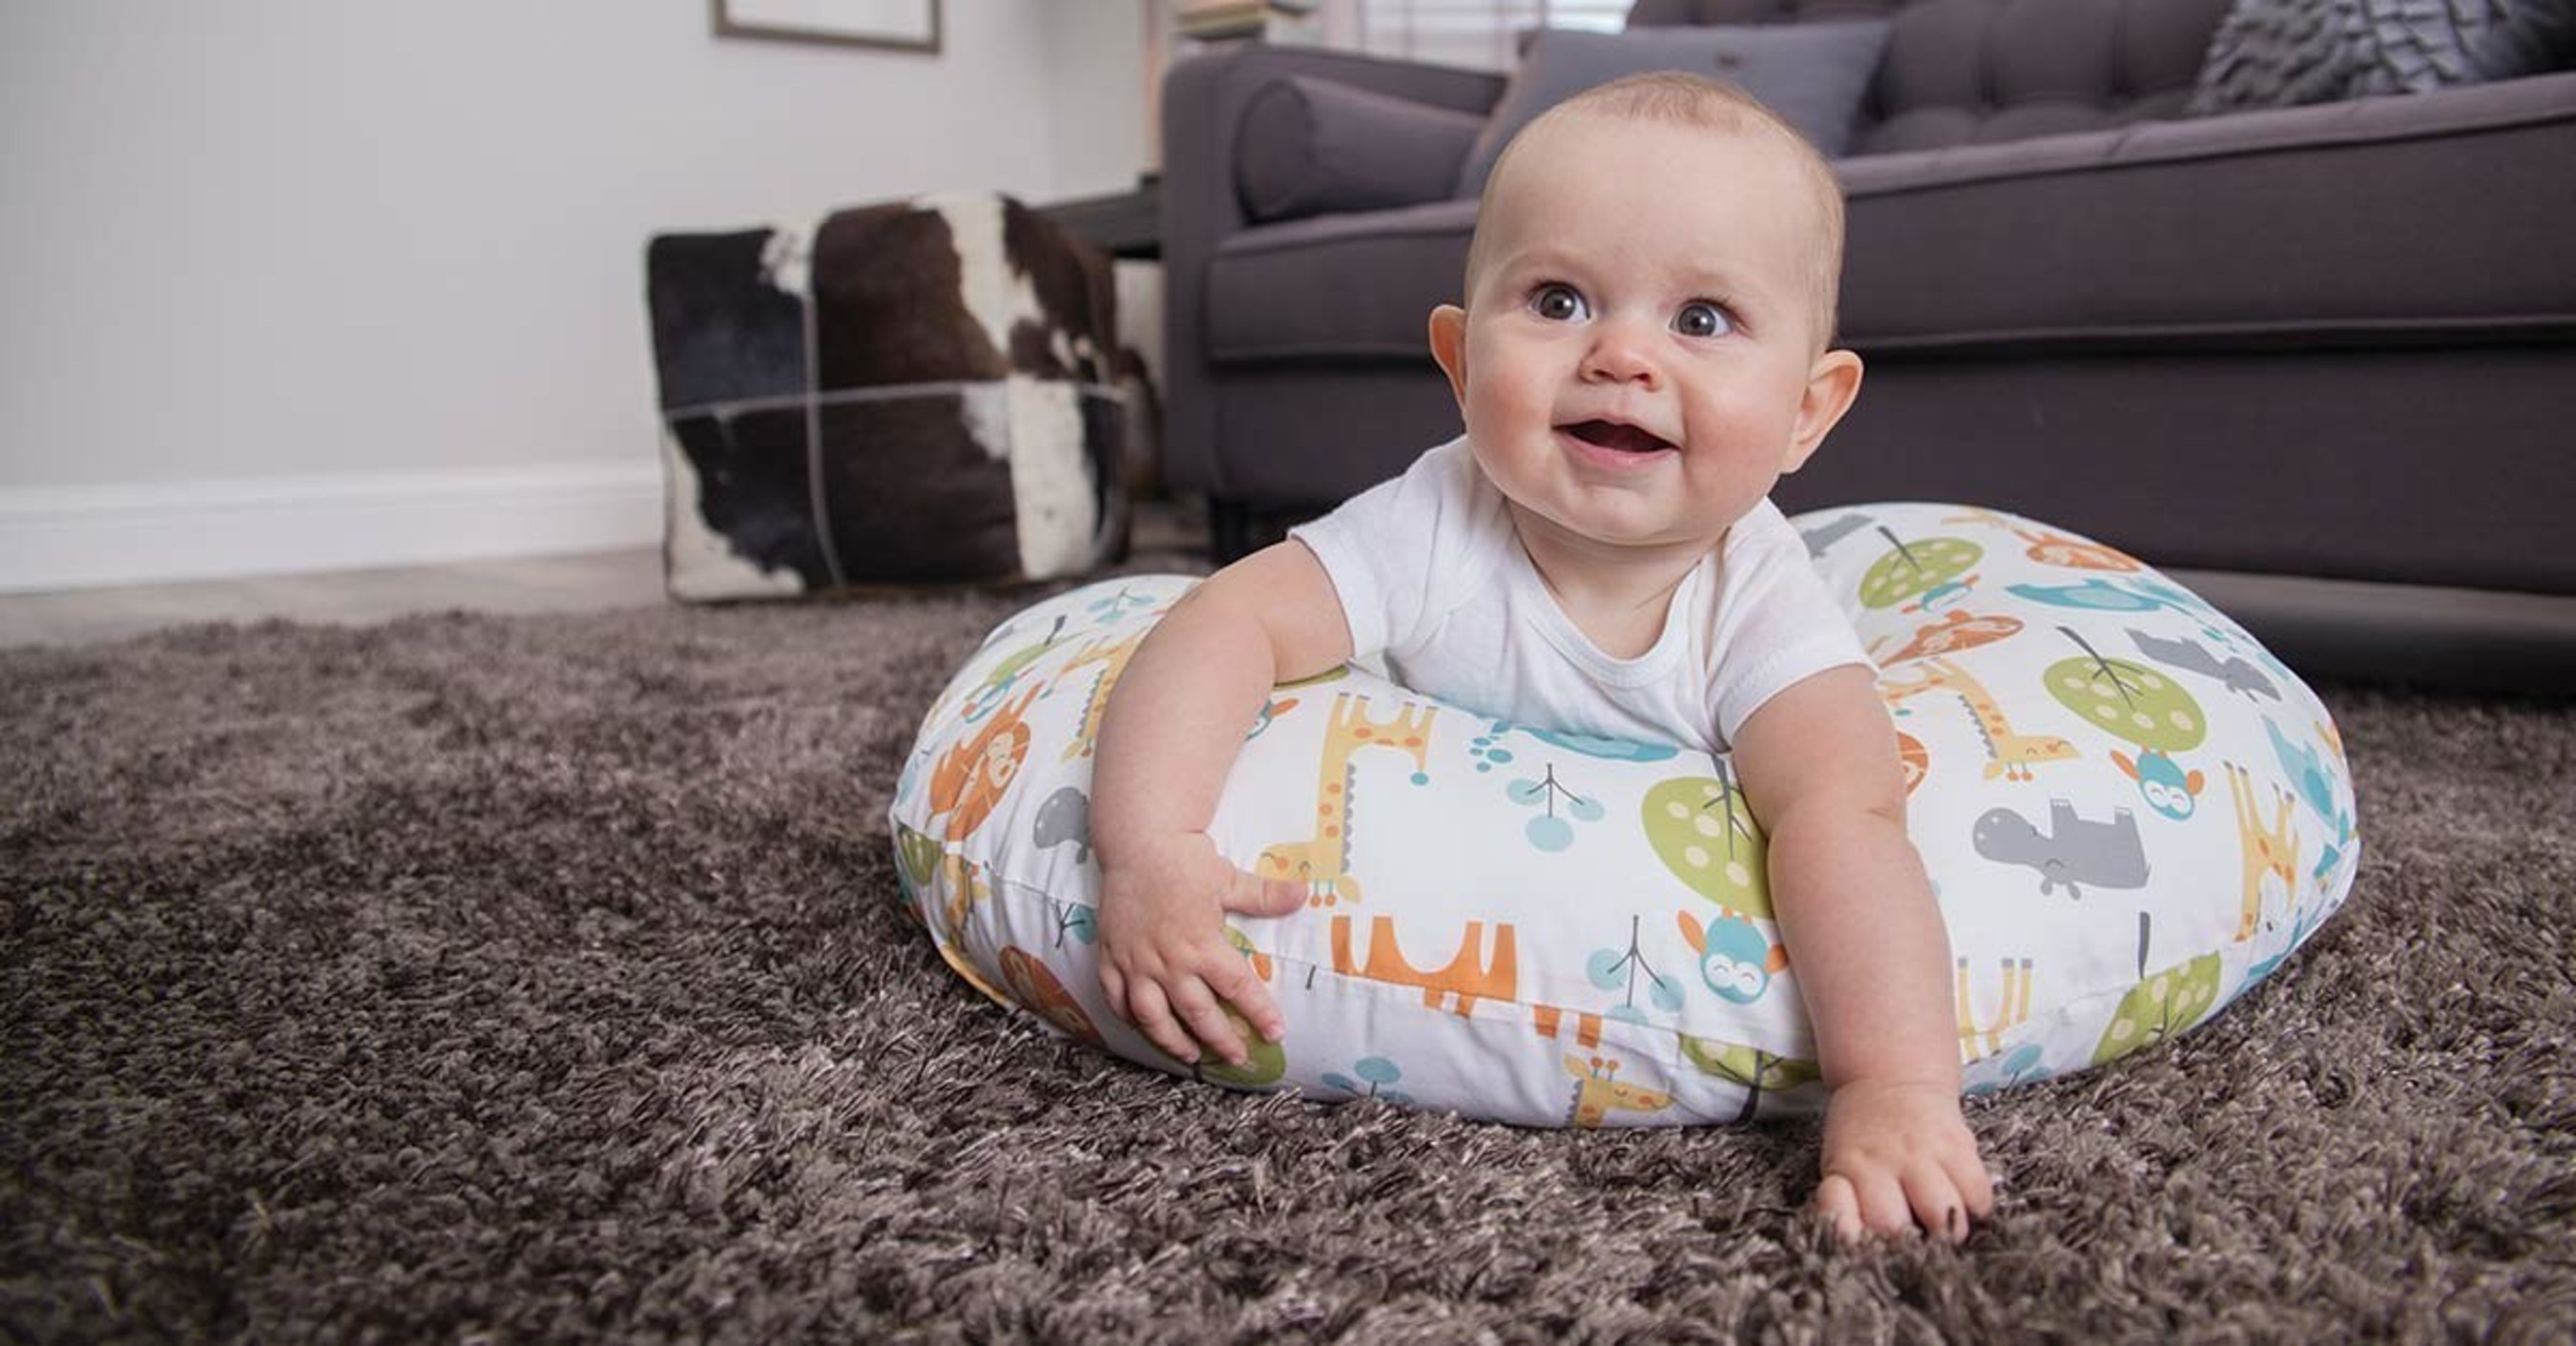 boppy launches safe sleep education kit for childcare centers